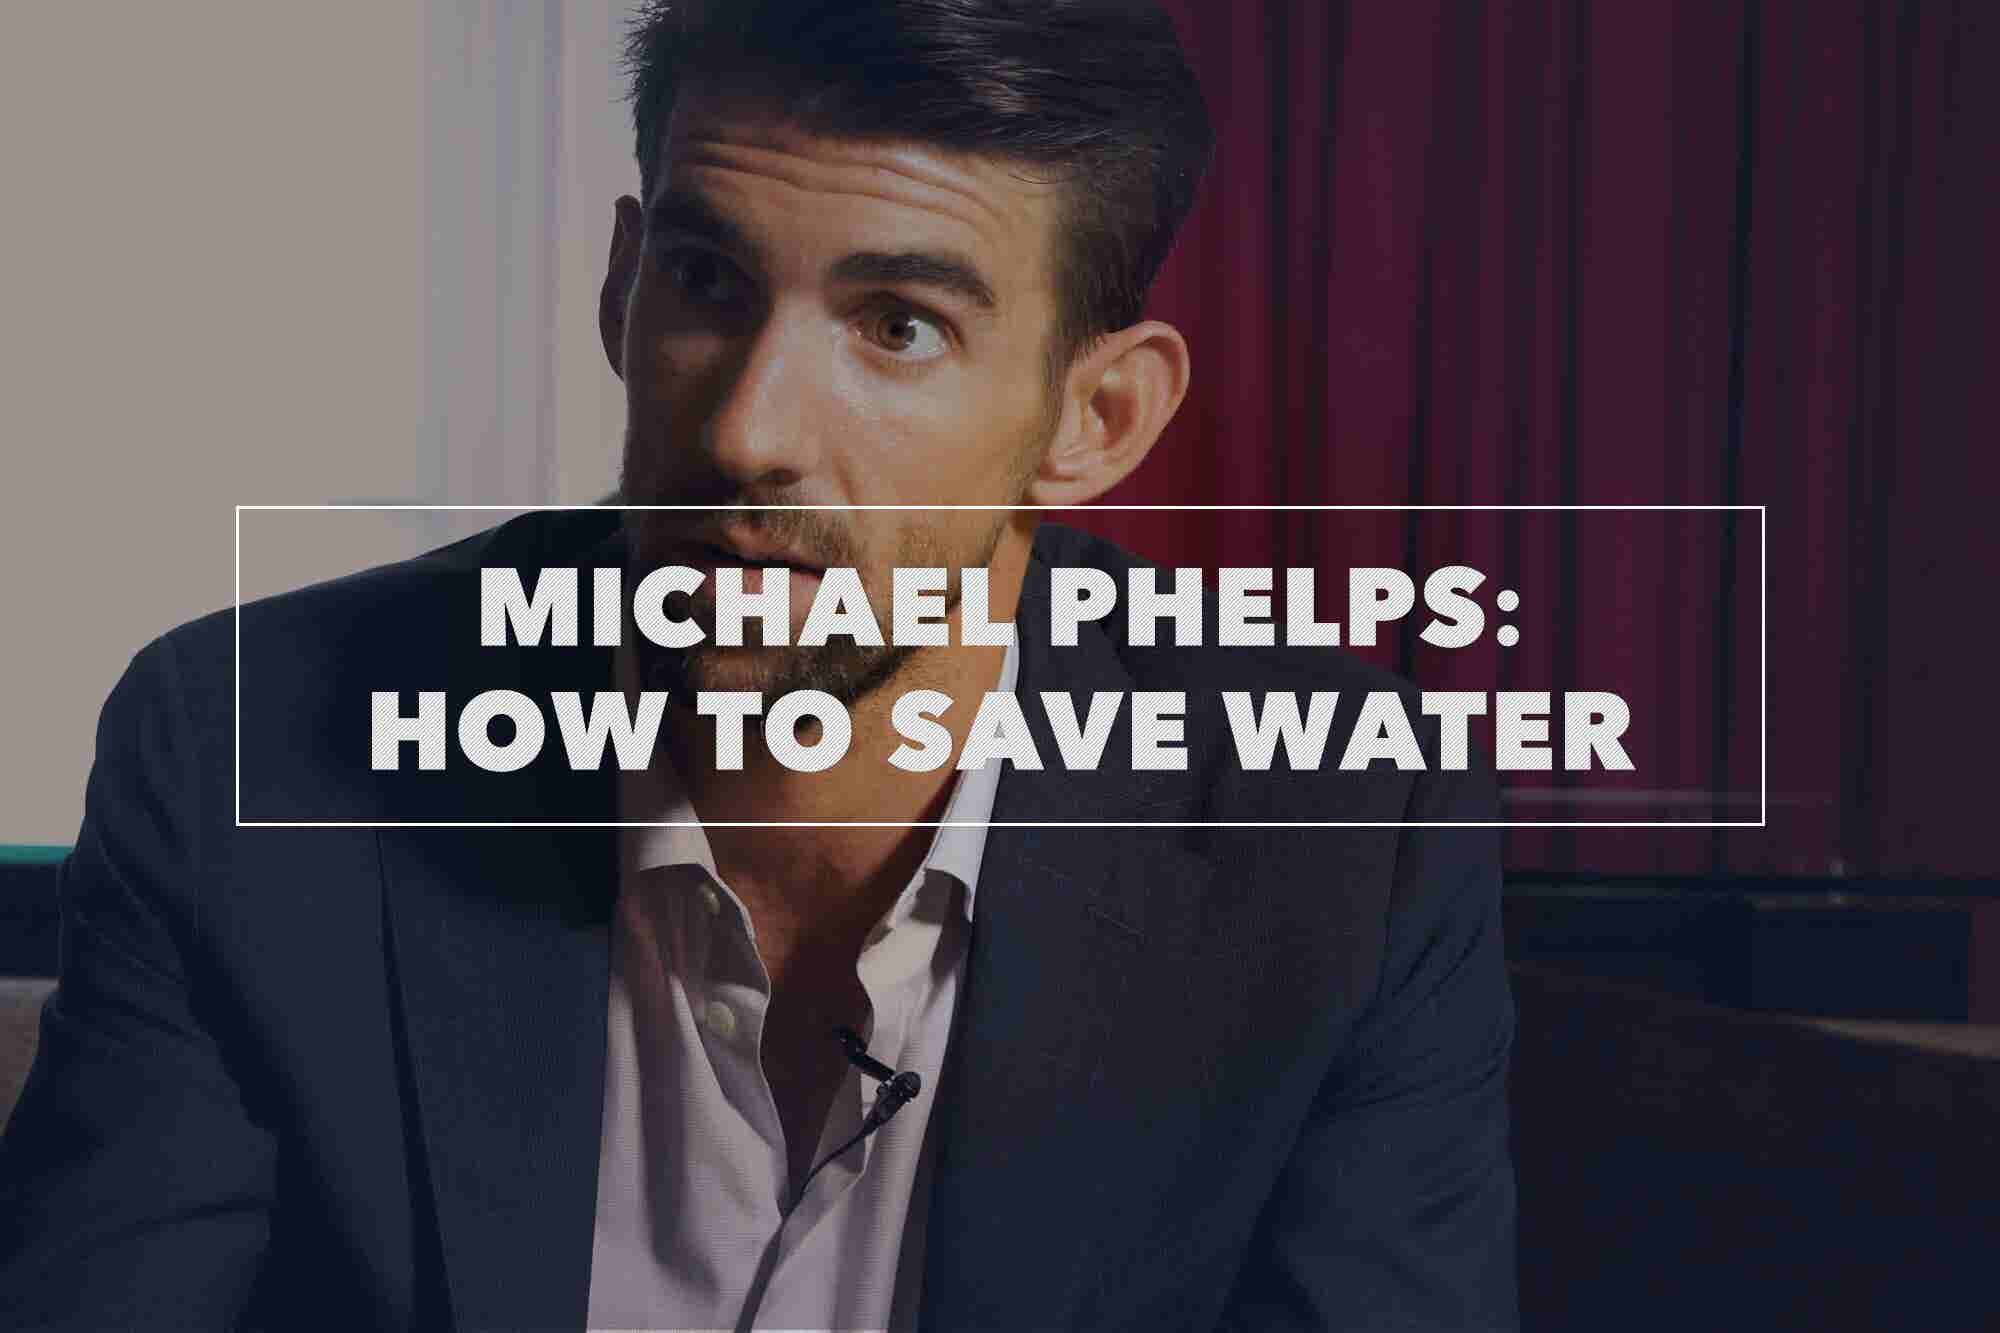 Olympic Superstar Michael Phelps Won Medals in the Water. Now He's Fig...